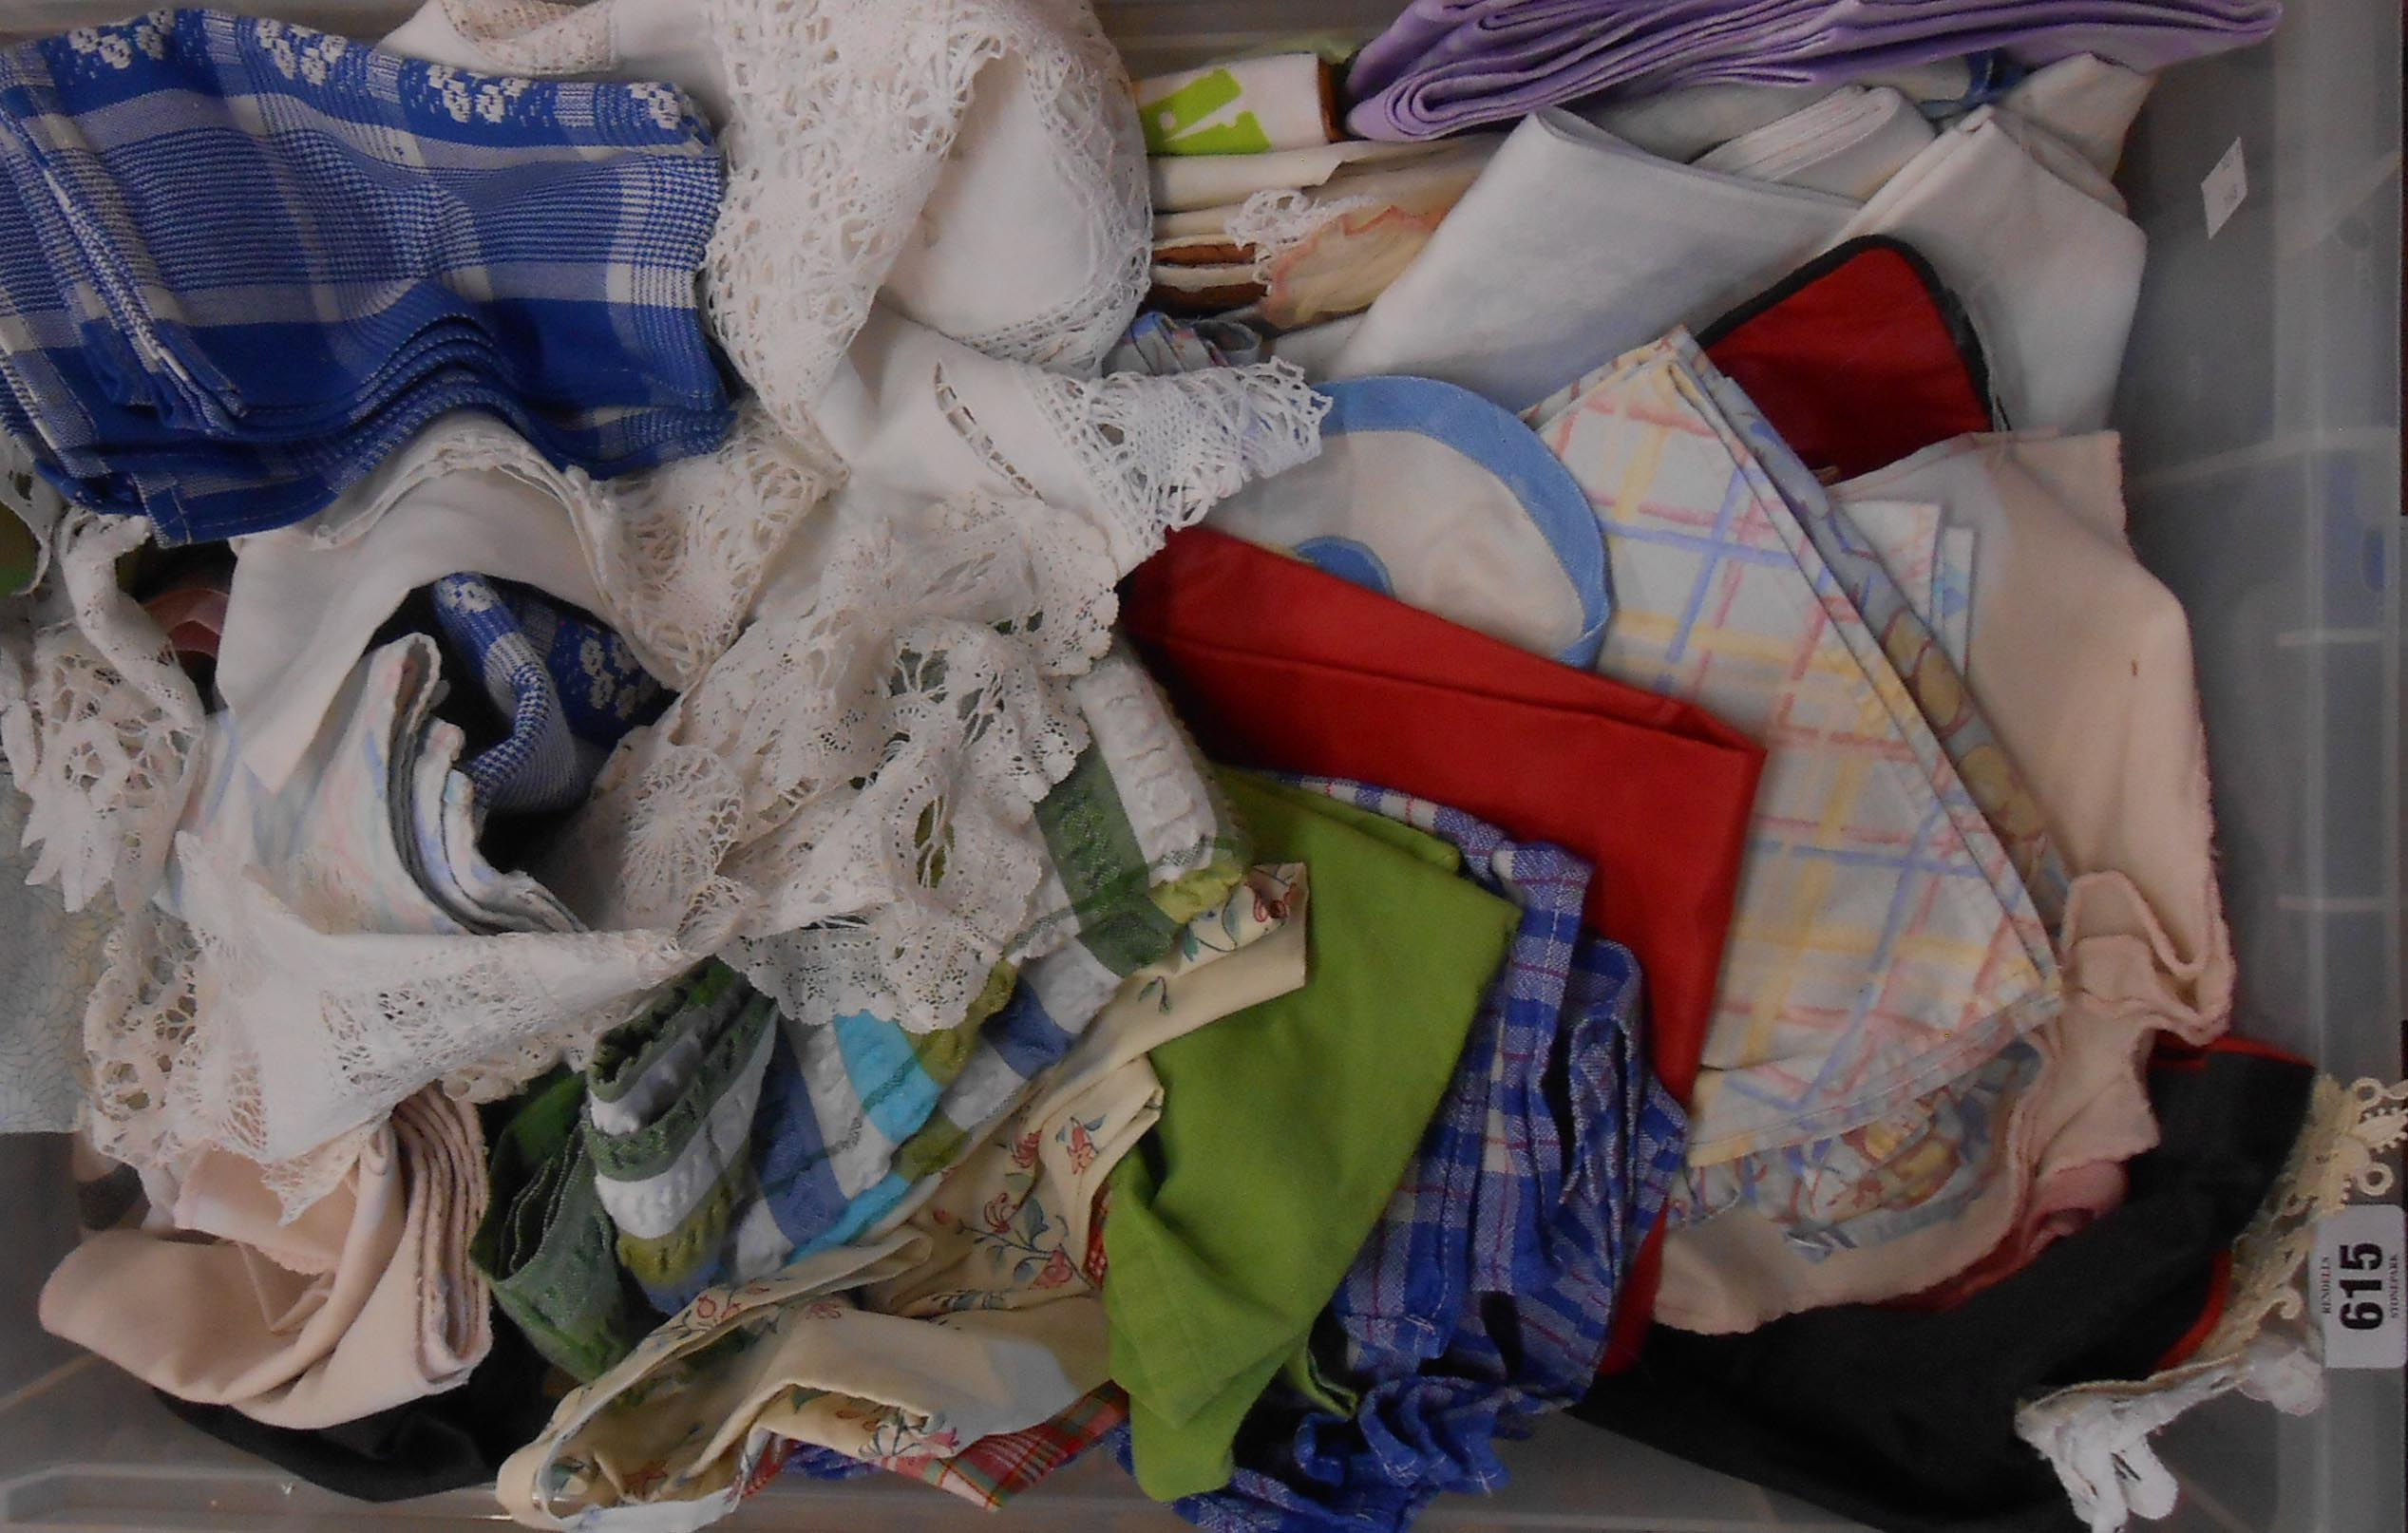 A crate containing assorted vintage textiles including tablecloths, table runners, tray cloths,